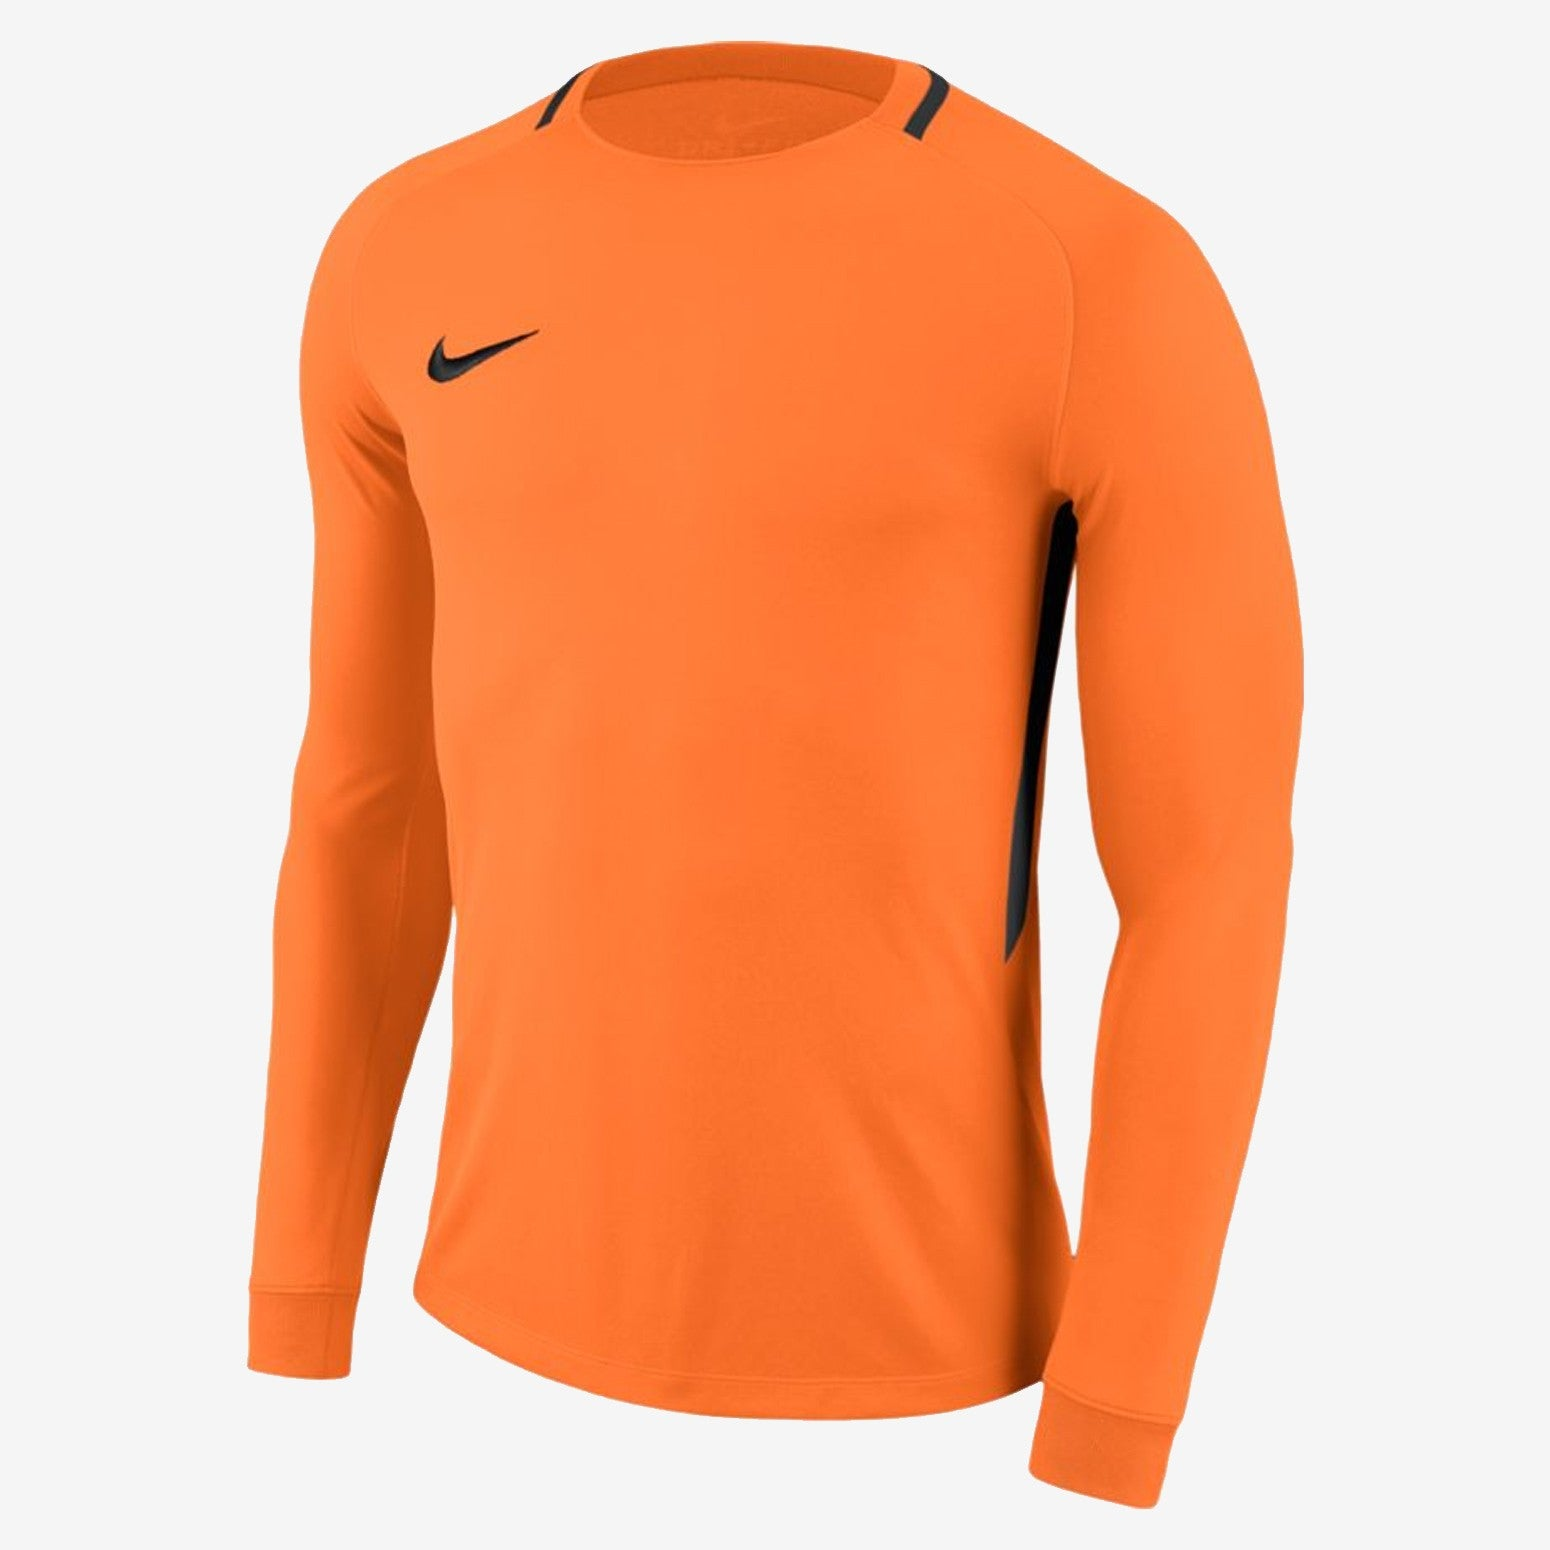 Women's Park III Goalkeeper Jersey - Total Orange/Black